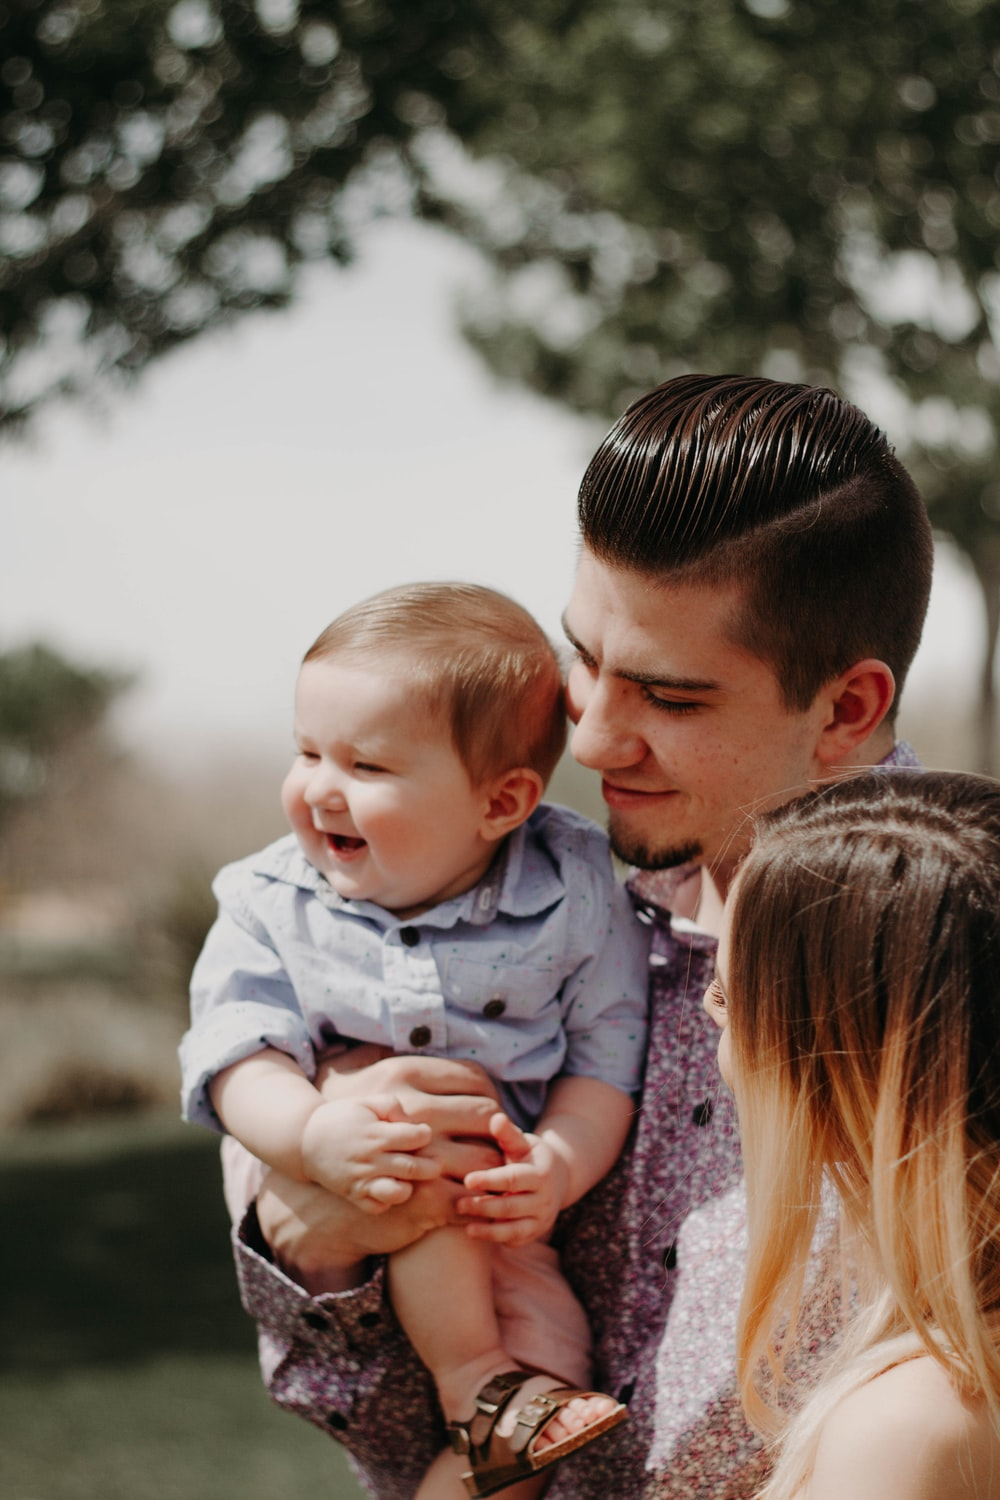 man carrying baby beside woman while smiling to each other